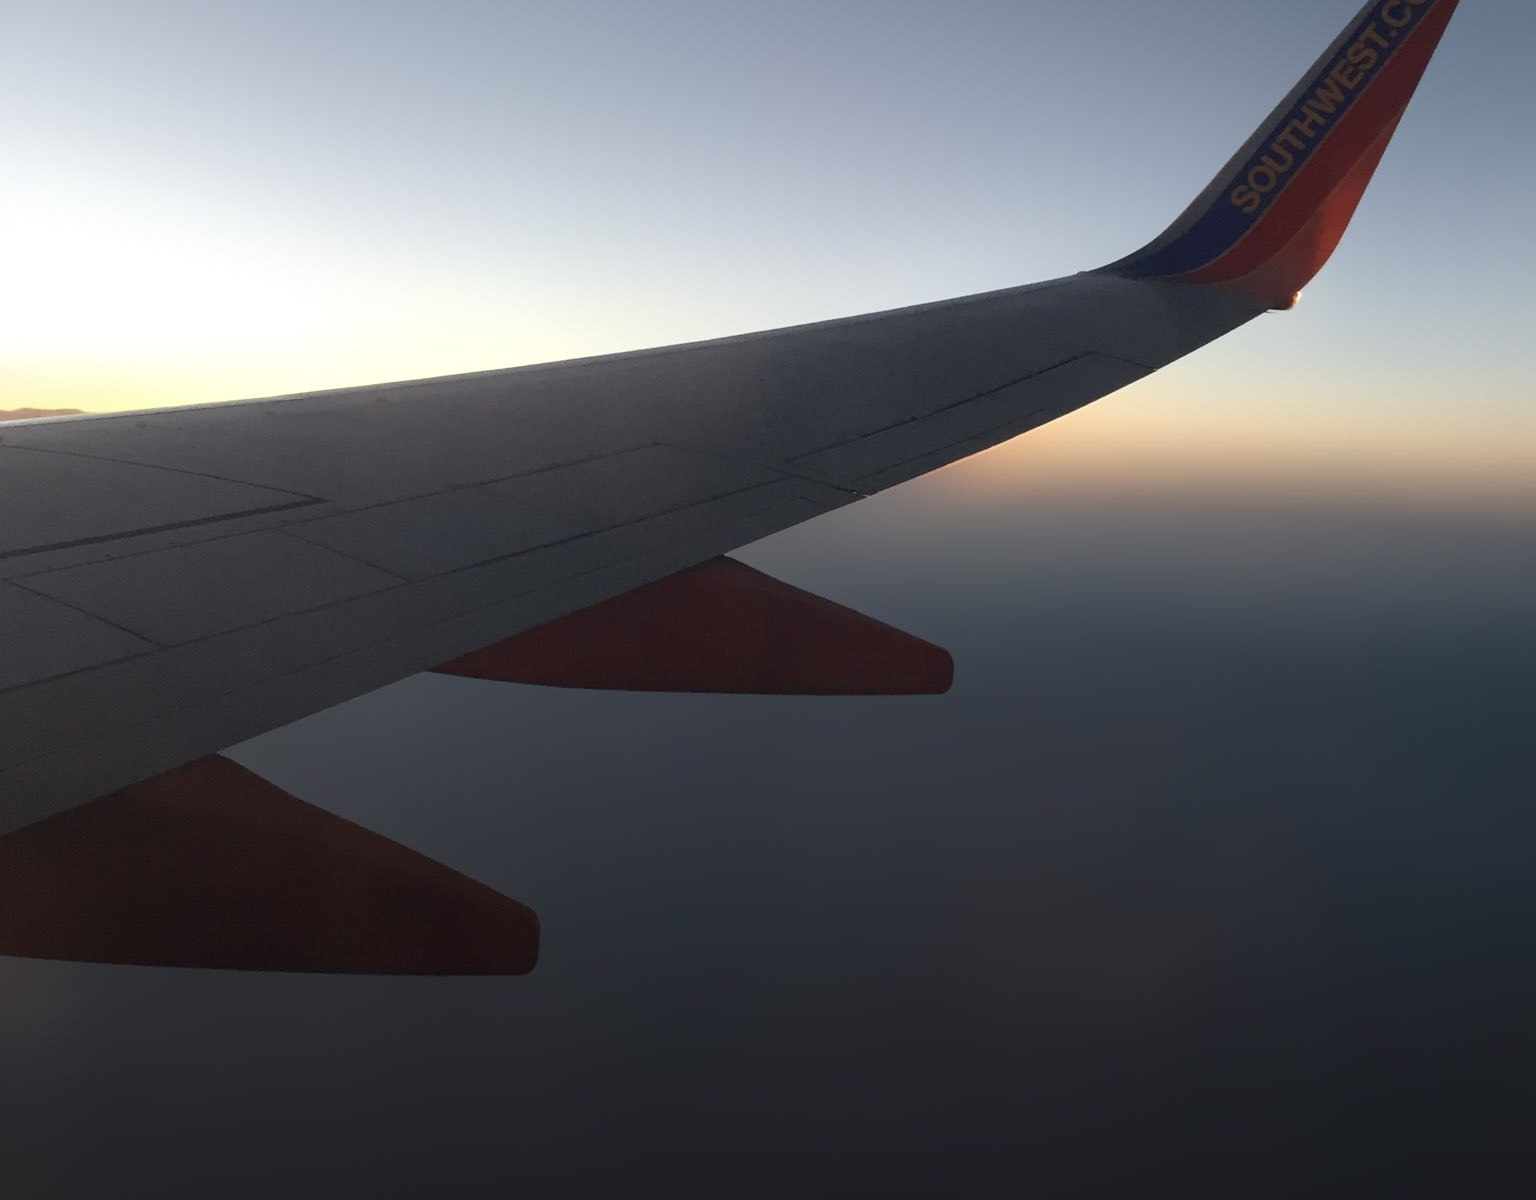 The view out my plane window